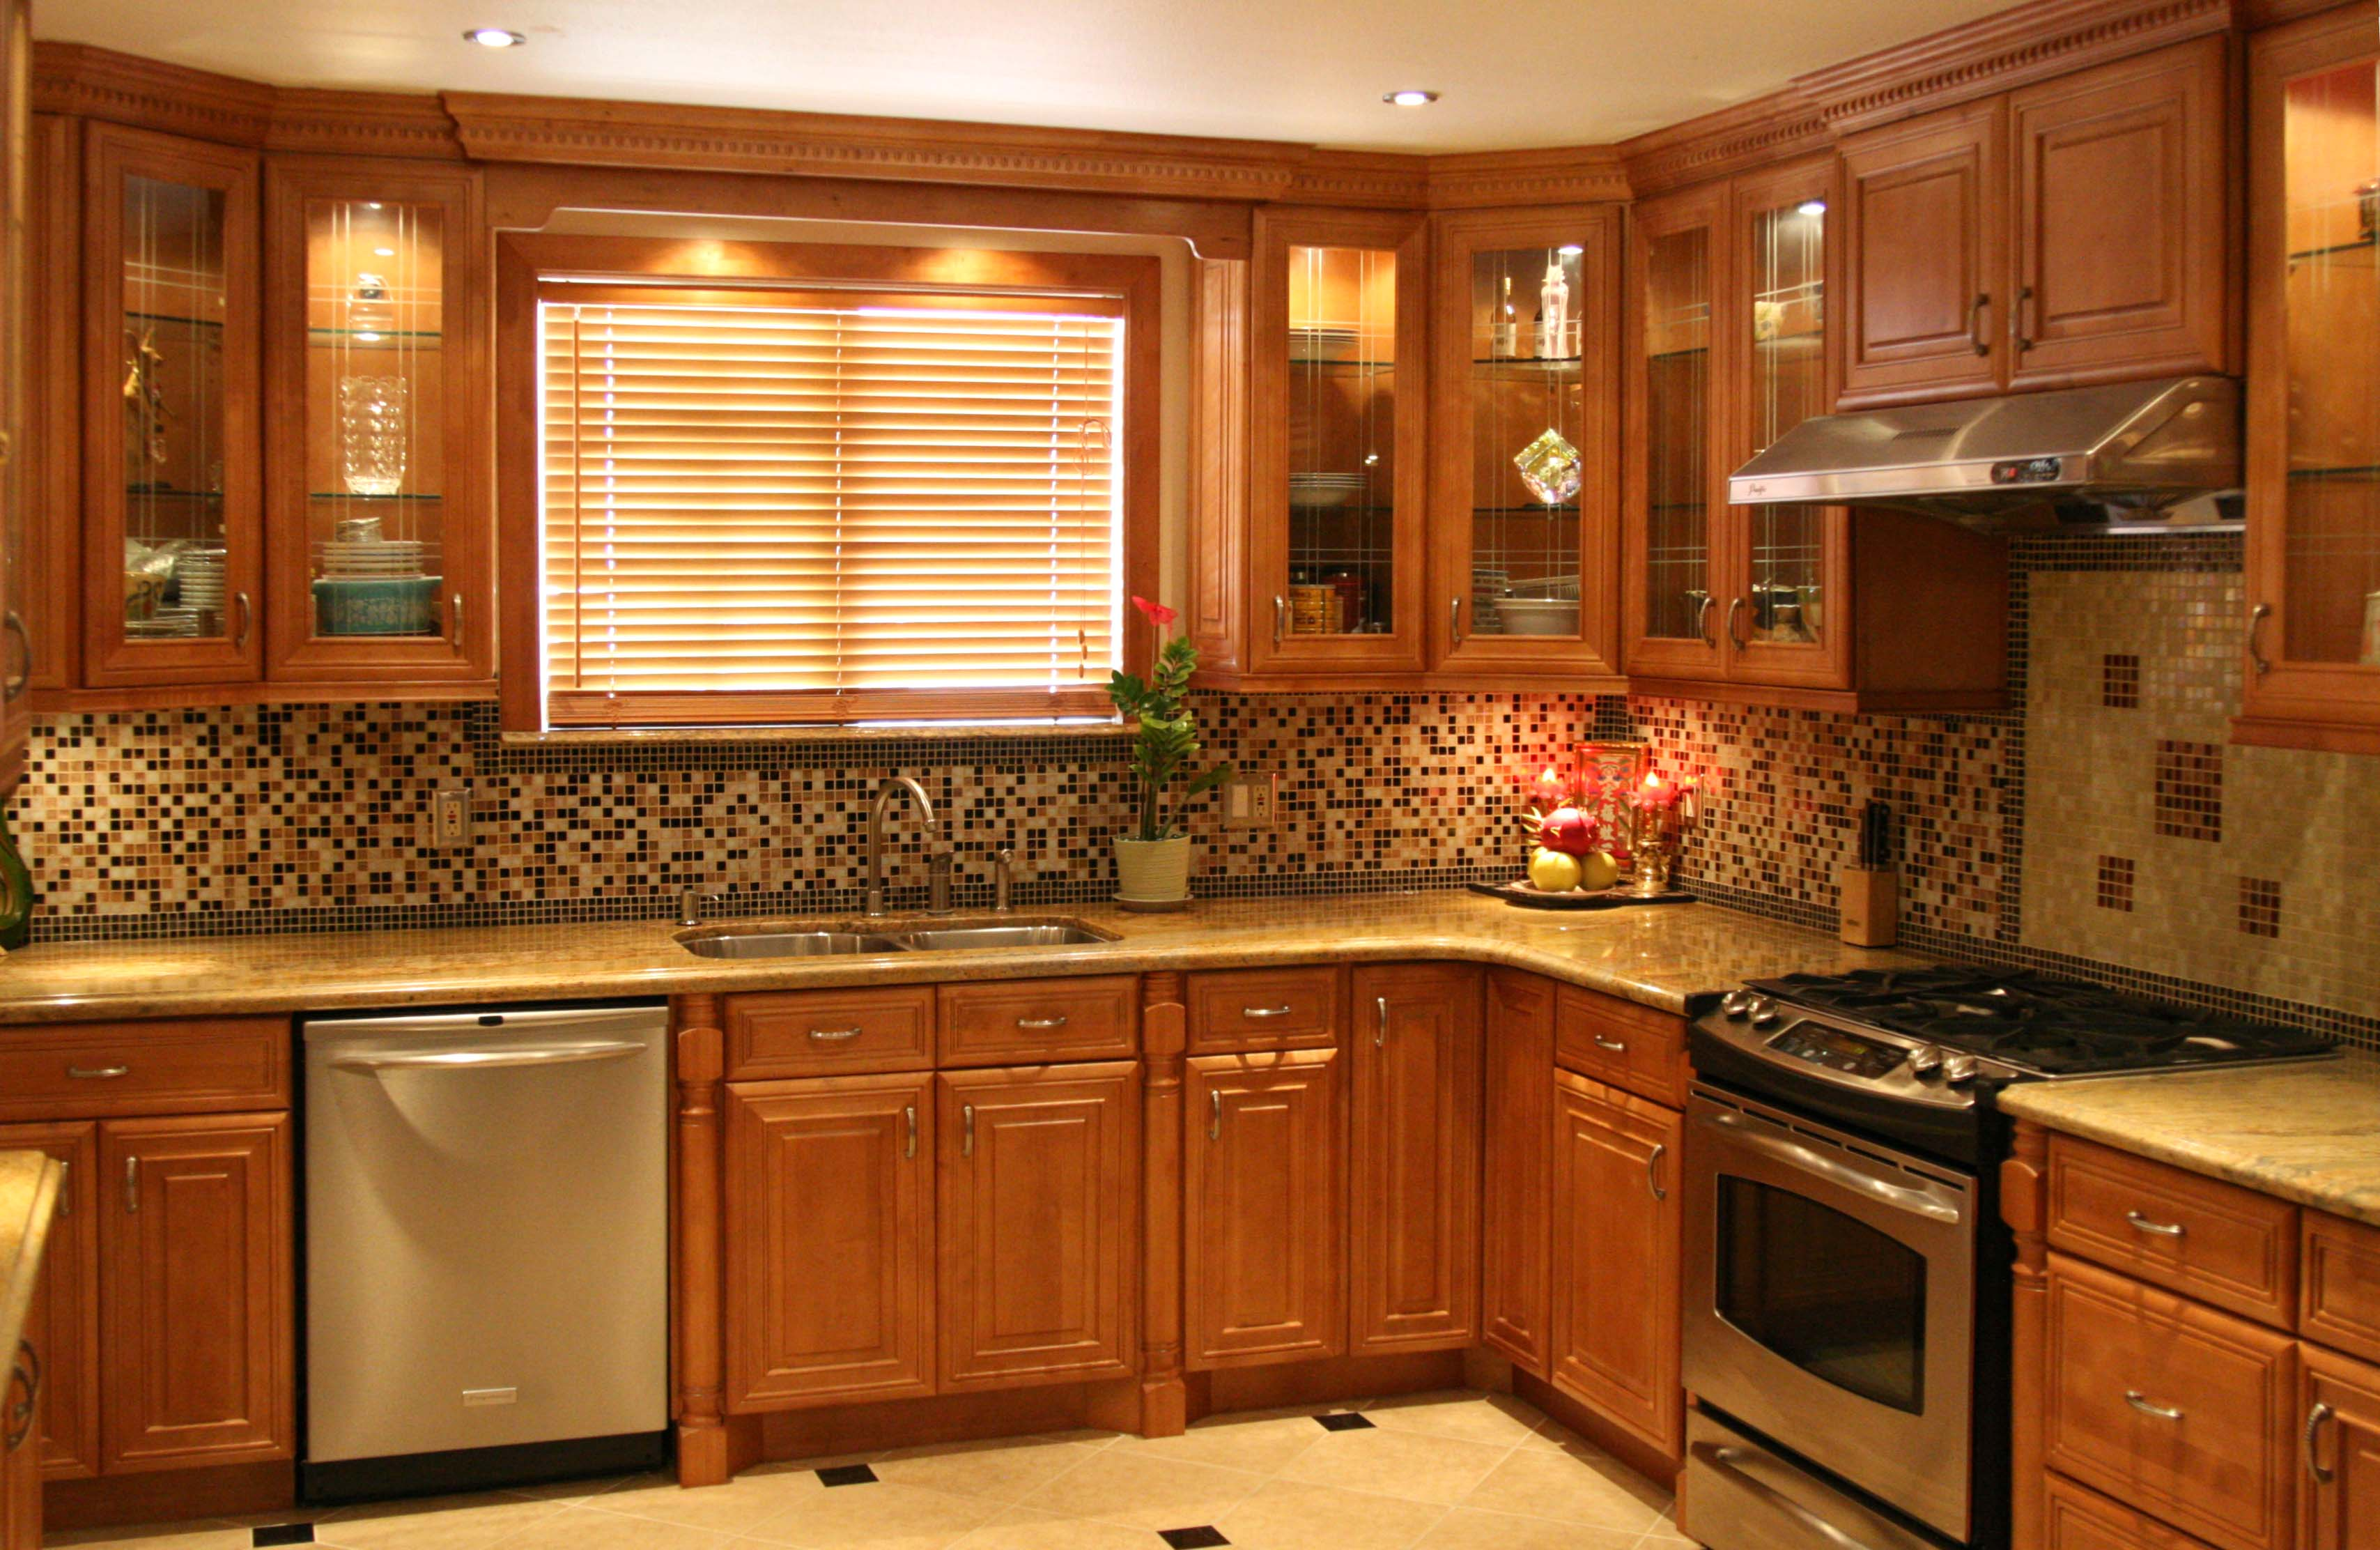 Solid wood vs laminate kitchen cabinets cabinetry for Solid wood kitchen cabinets